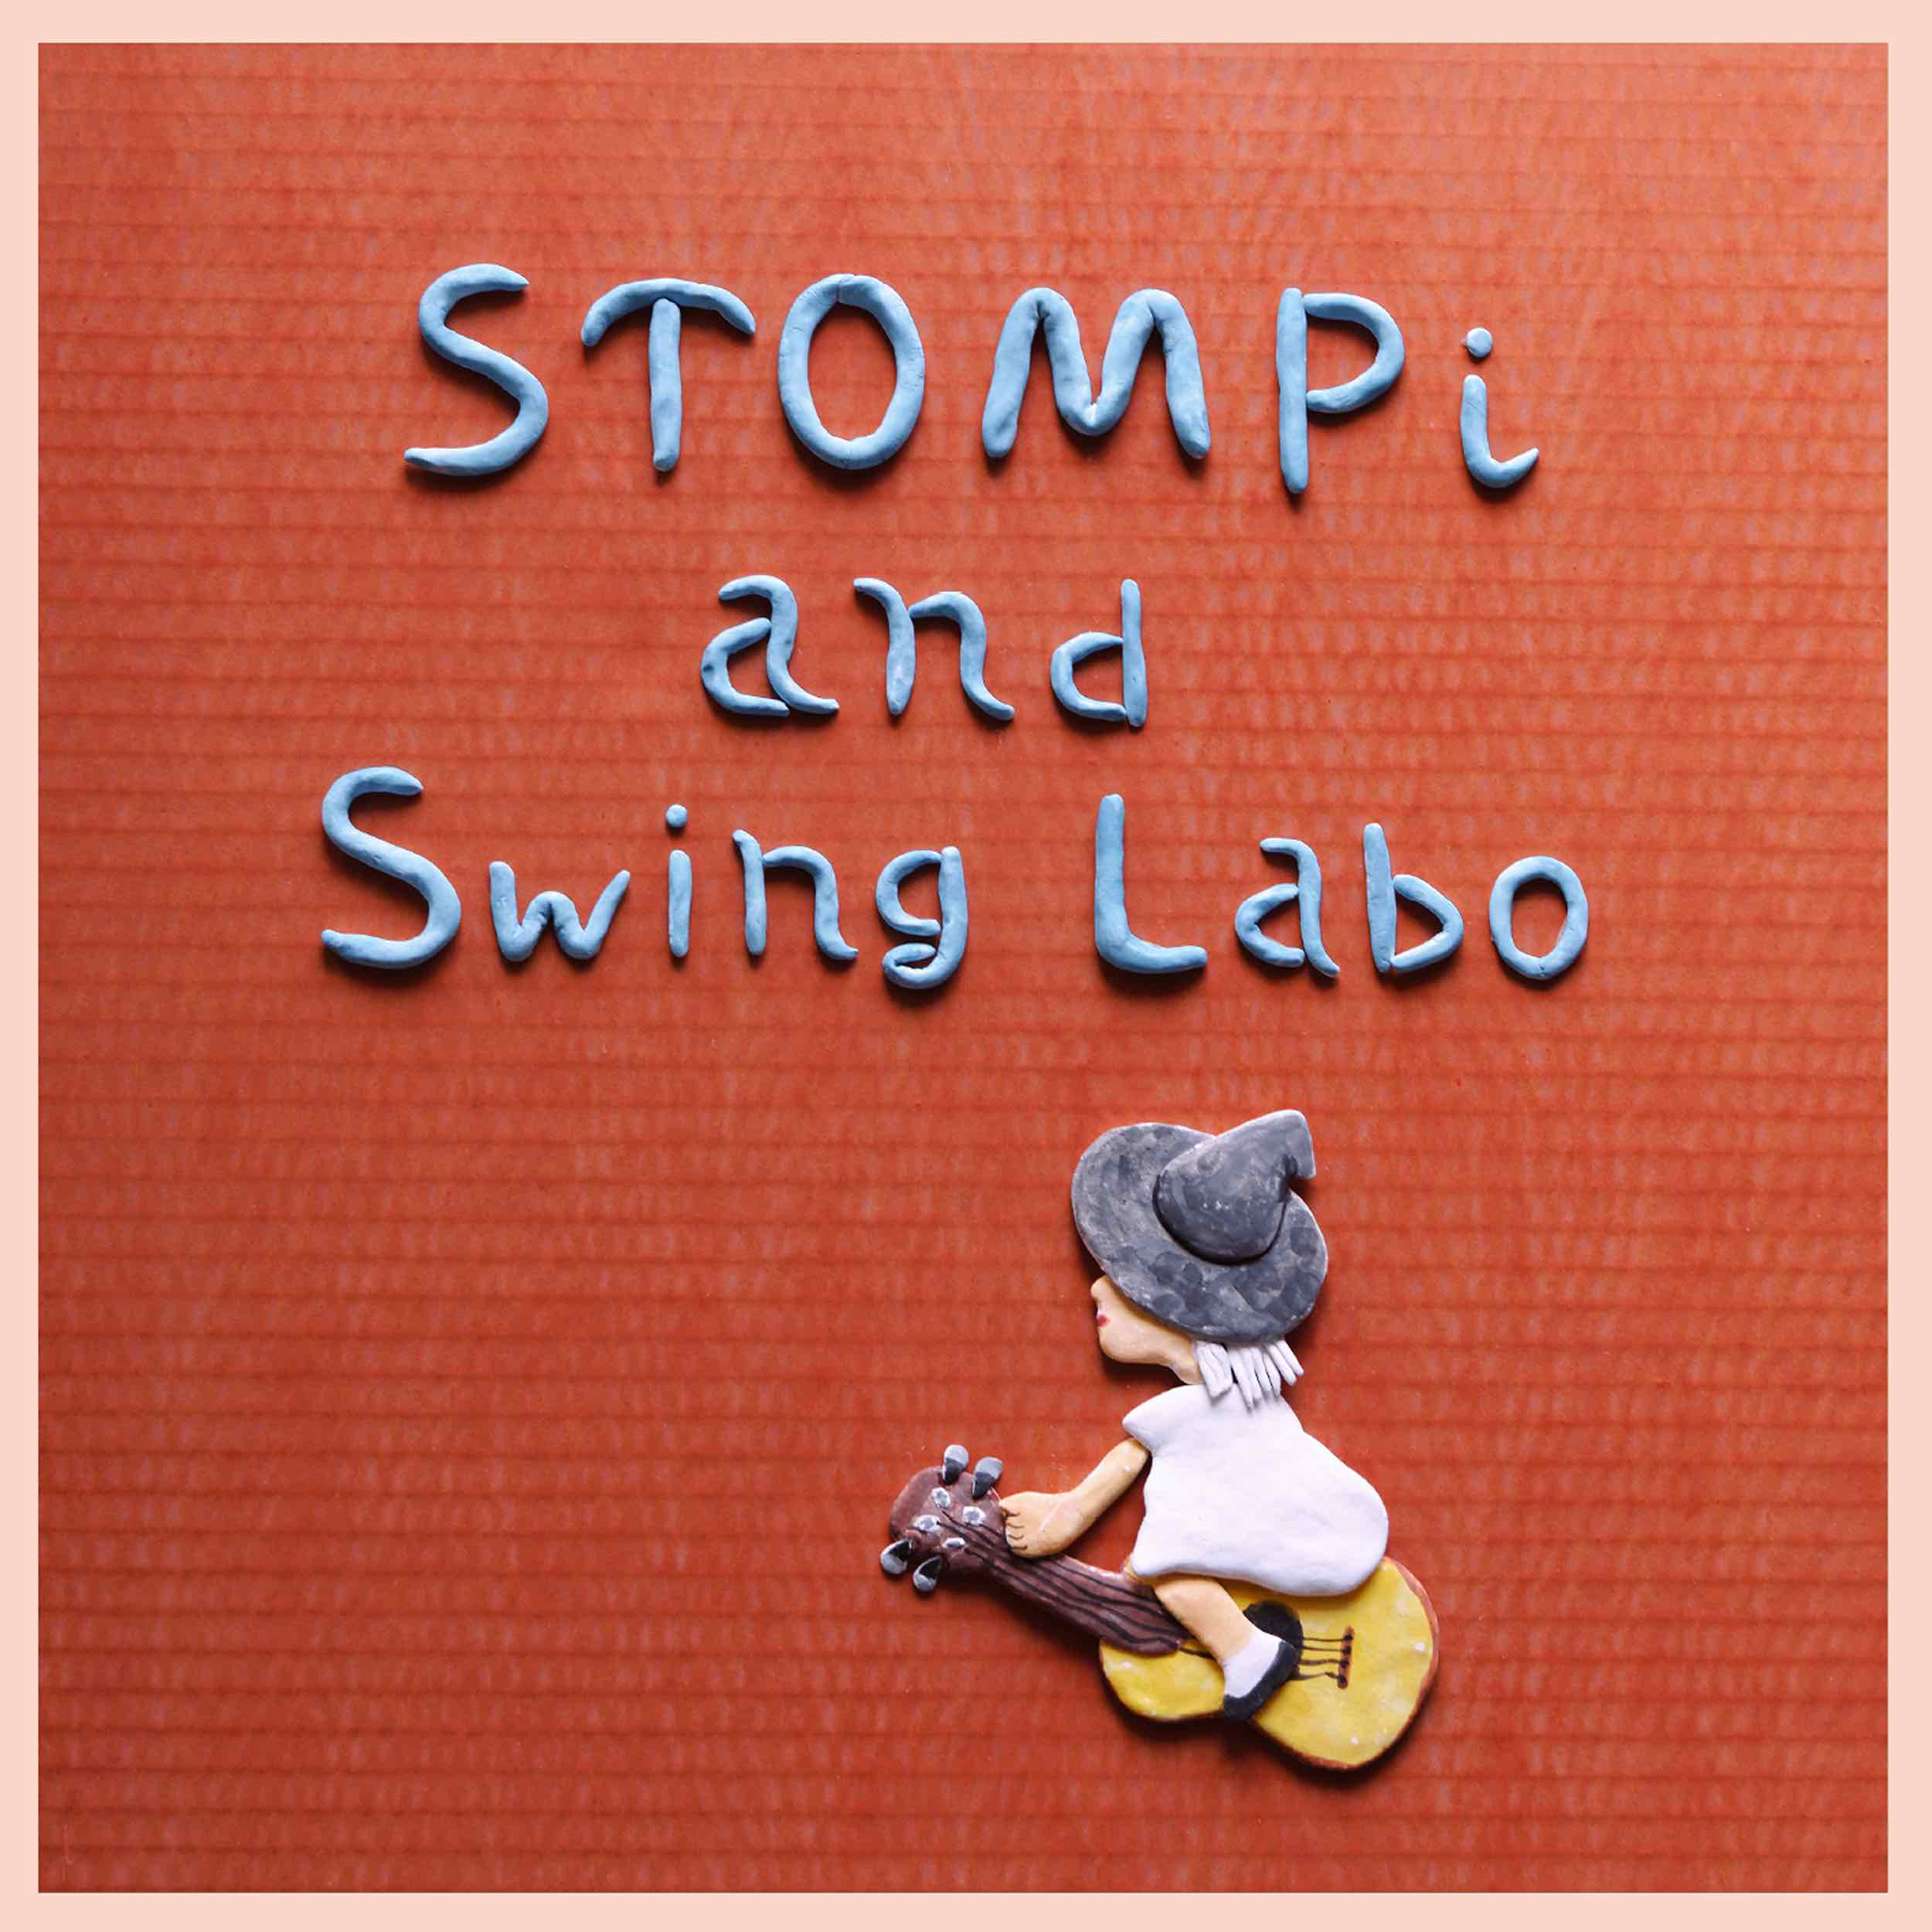 STOMPi and Swing Labo『STOMPi and Swing Labo』